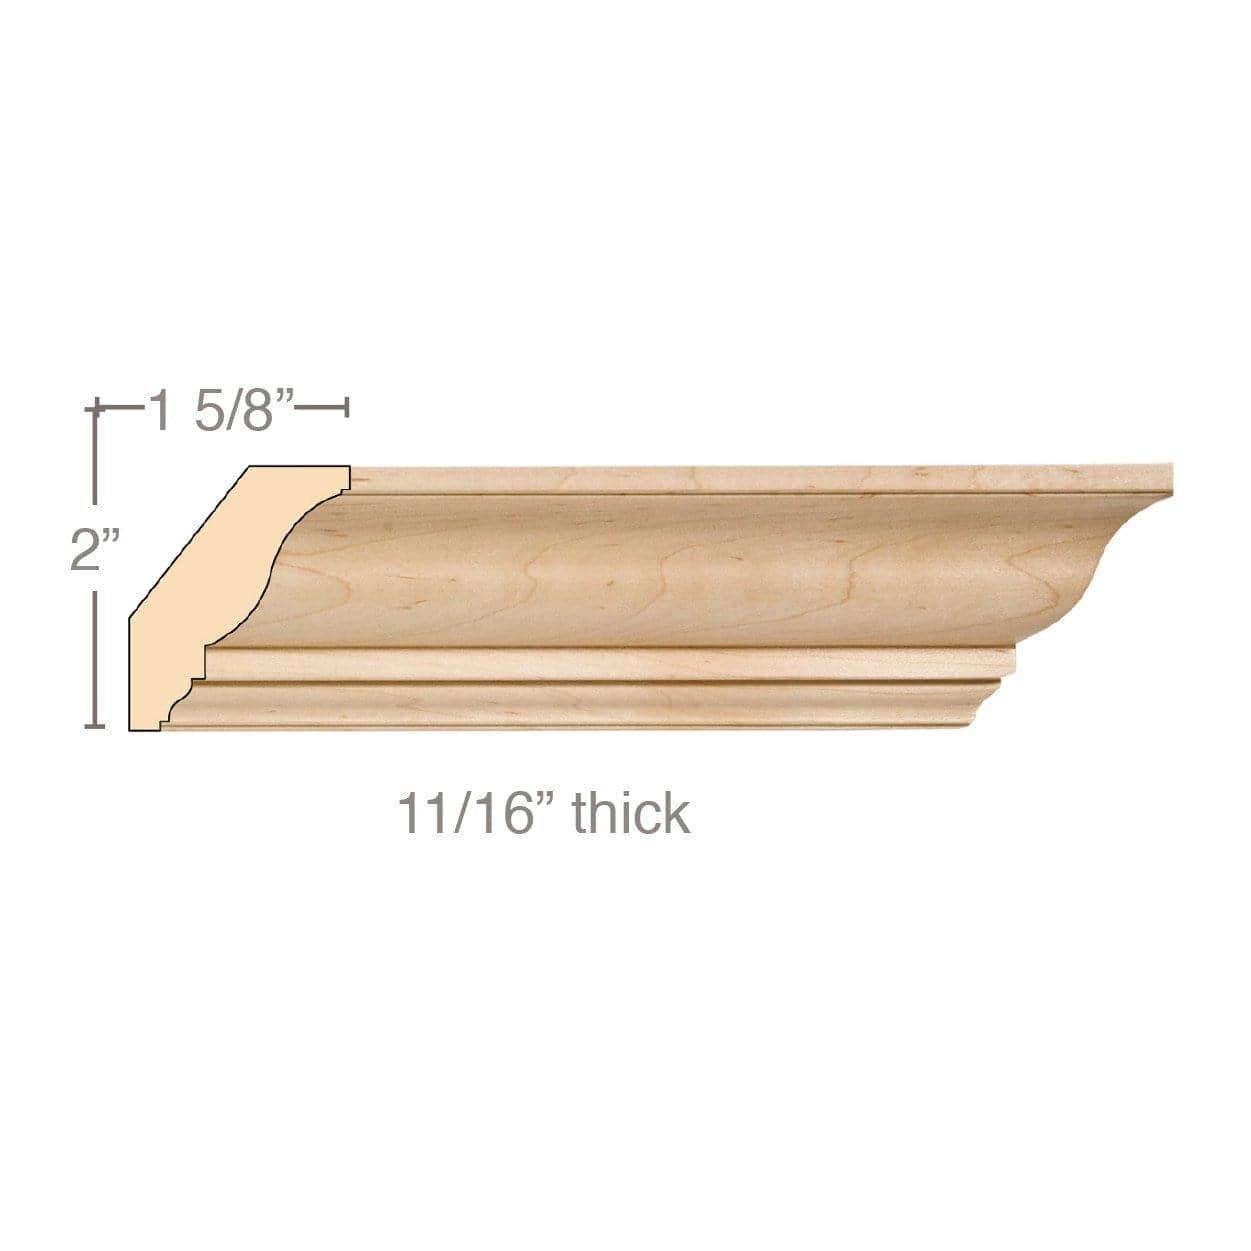 Medium Traditional Crown, 2 1/2''w x 11/16''d x 8' length, Resin is priced per 8' length